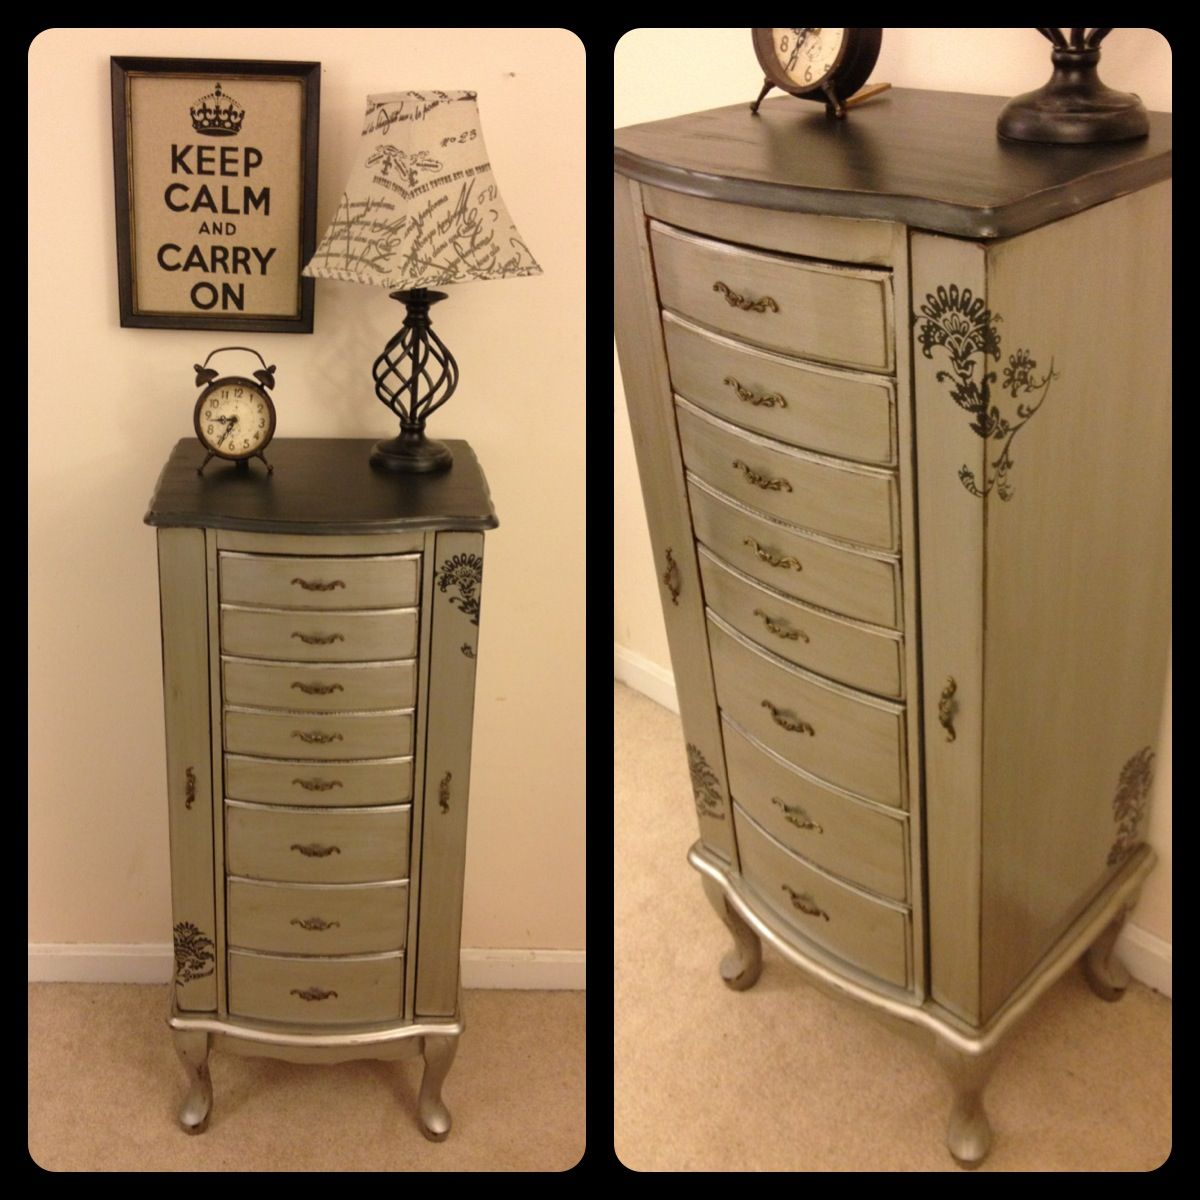 Metallic Silver And Black Jewelry Armoire By Furniture Alchemy Modern Masters Paint Painted Jewelry Armoire Makeover Painted Jewelry Armoire Armoire Makeover